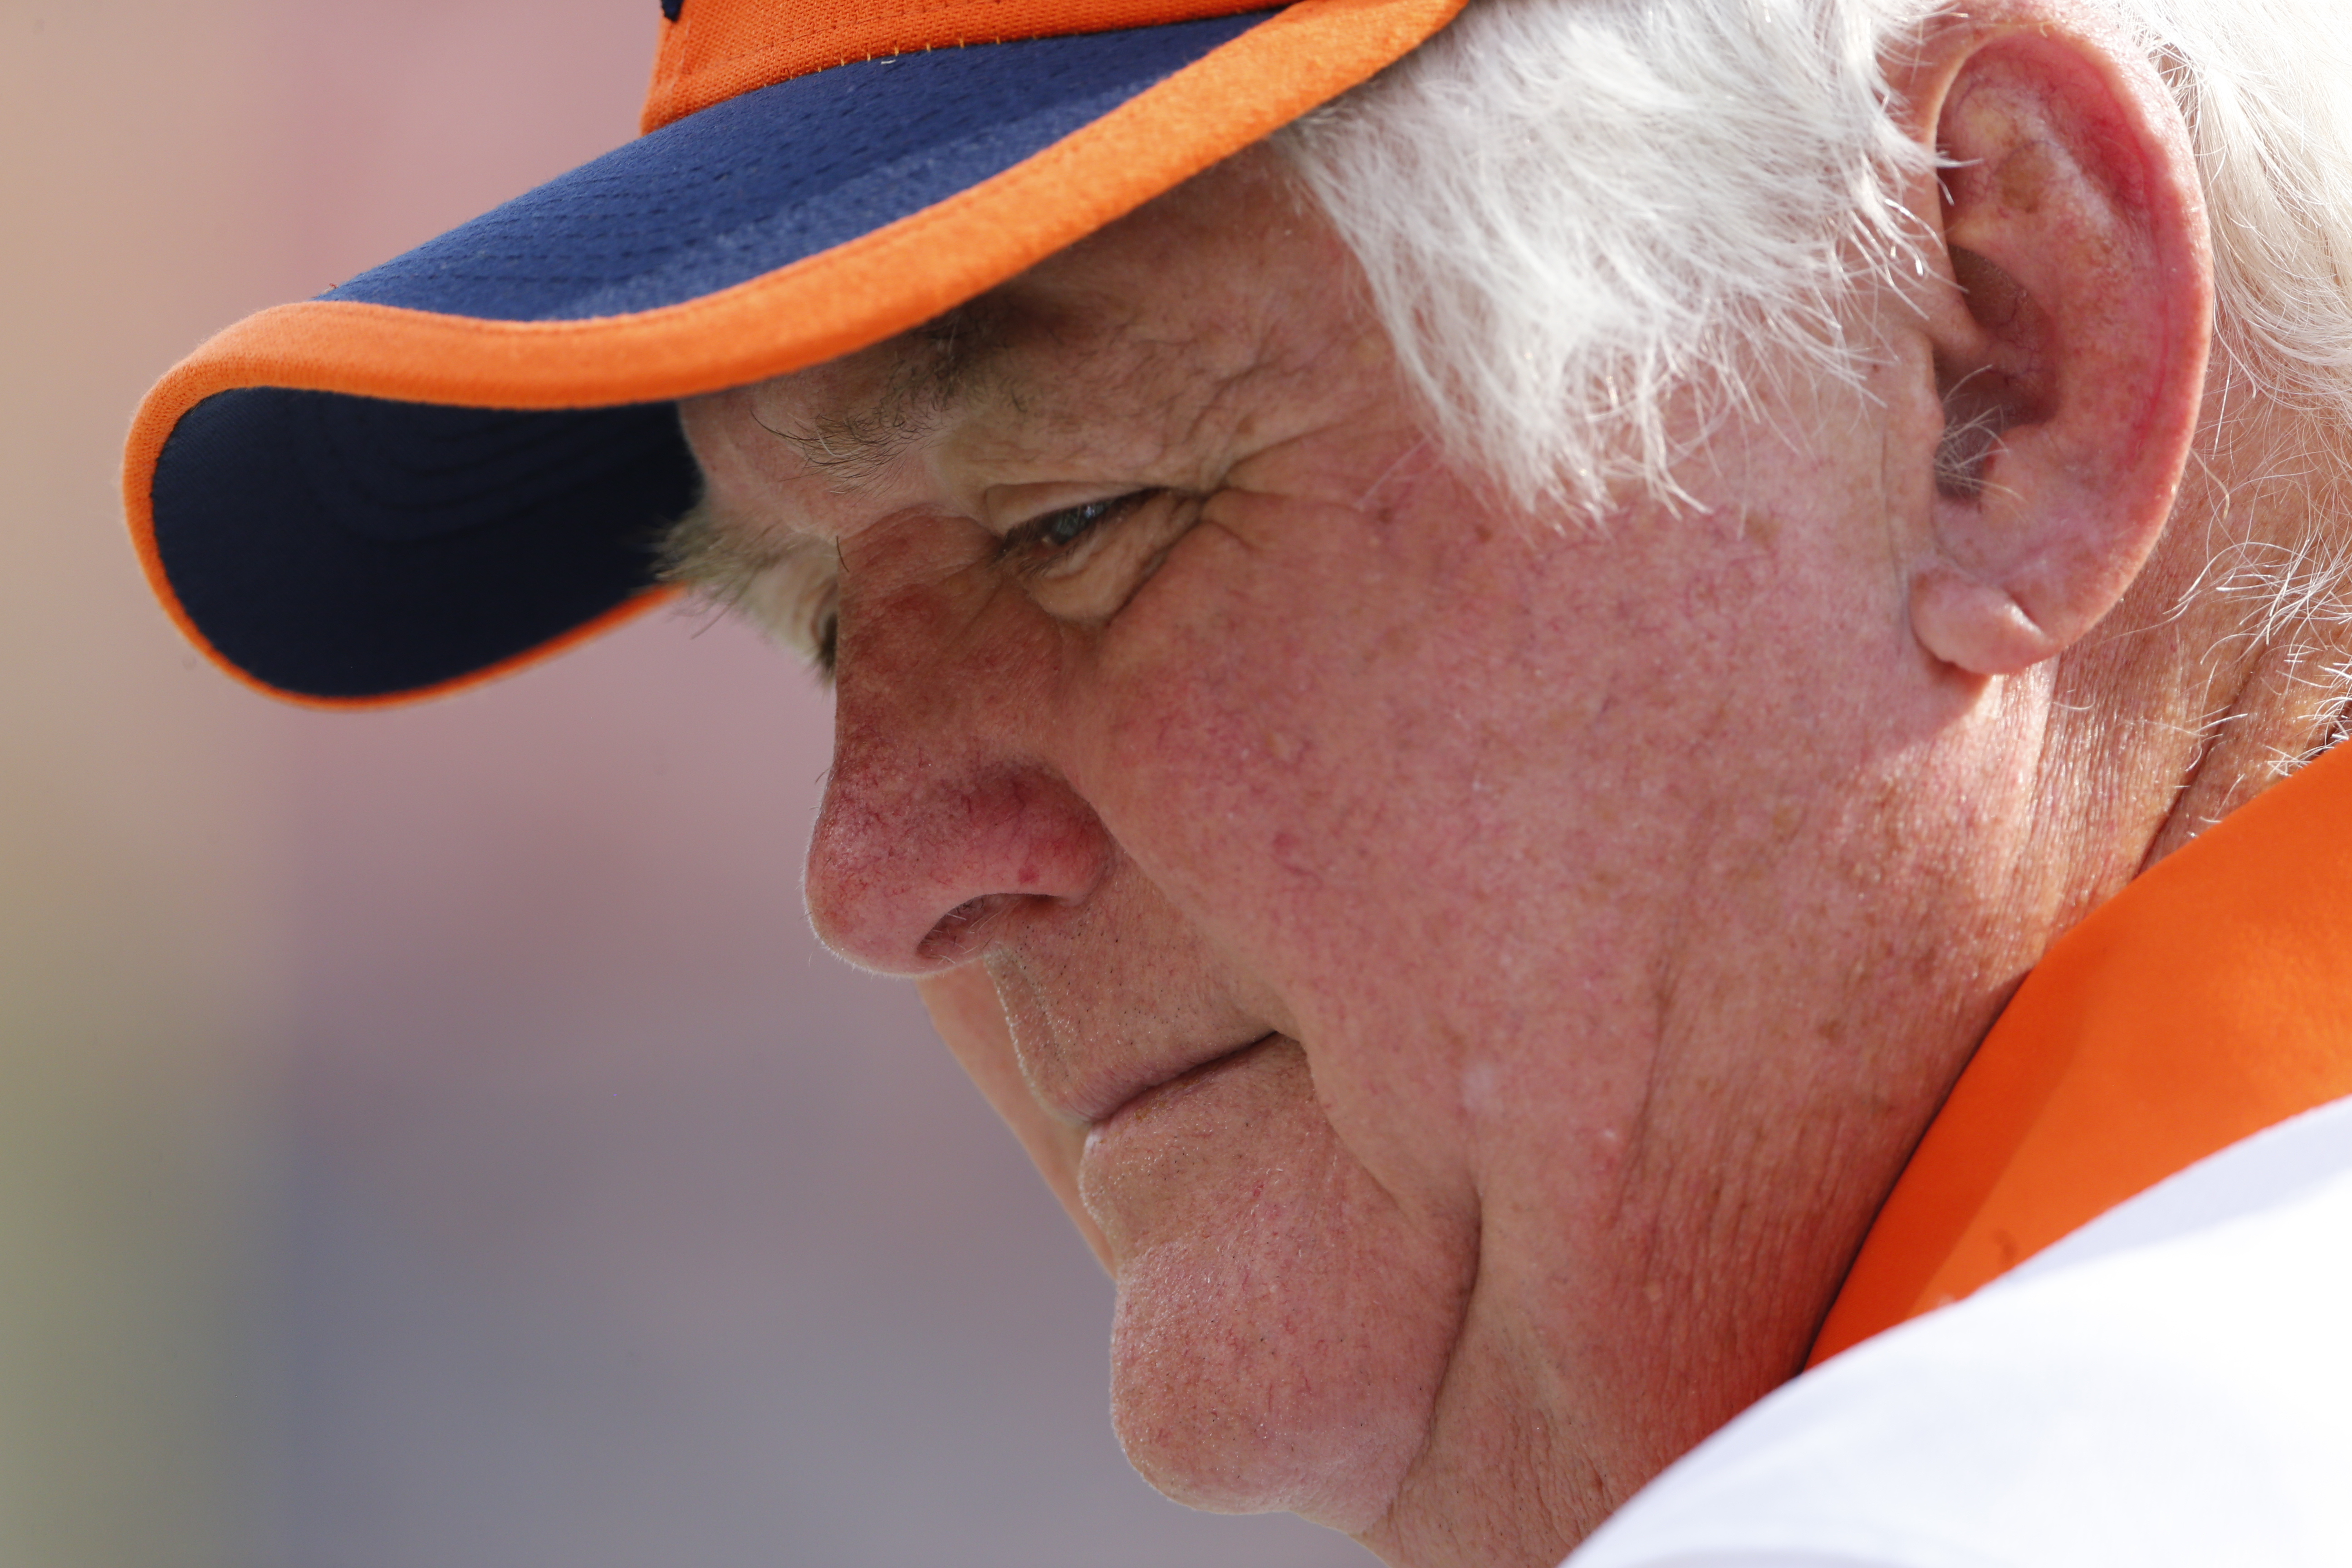 FILE - In this Sept. 13, 2015, file photo, Denver Broncos defensive coordinator Wade Phillips looks on during an NFL football game against the Baltimore Ravens in Denver. The Broncos defensive coordinator is a character cut from the same cloth as his dad,